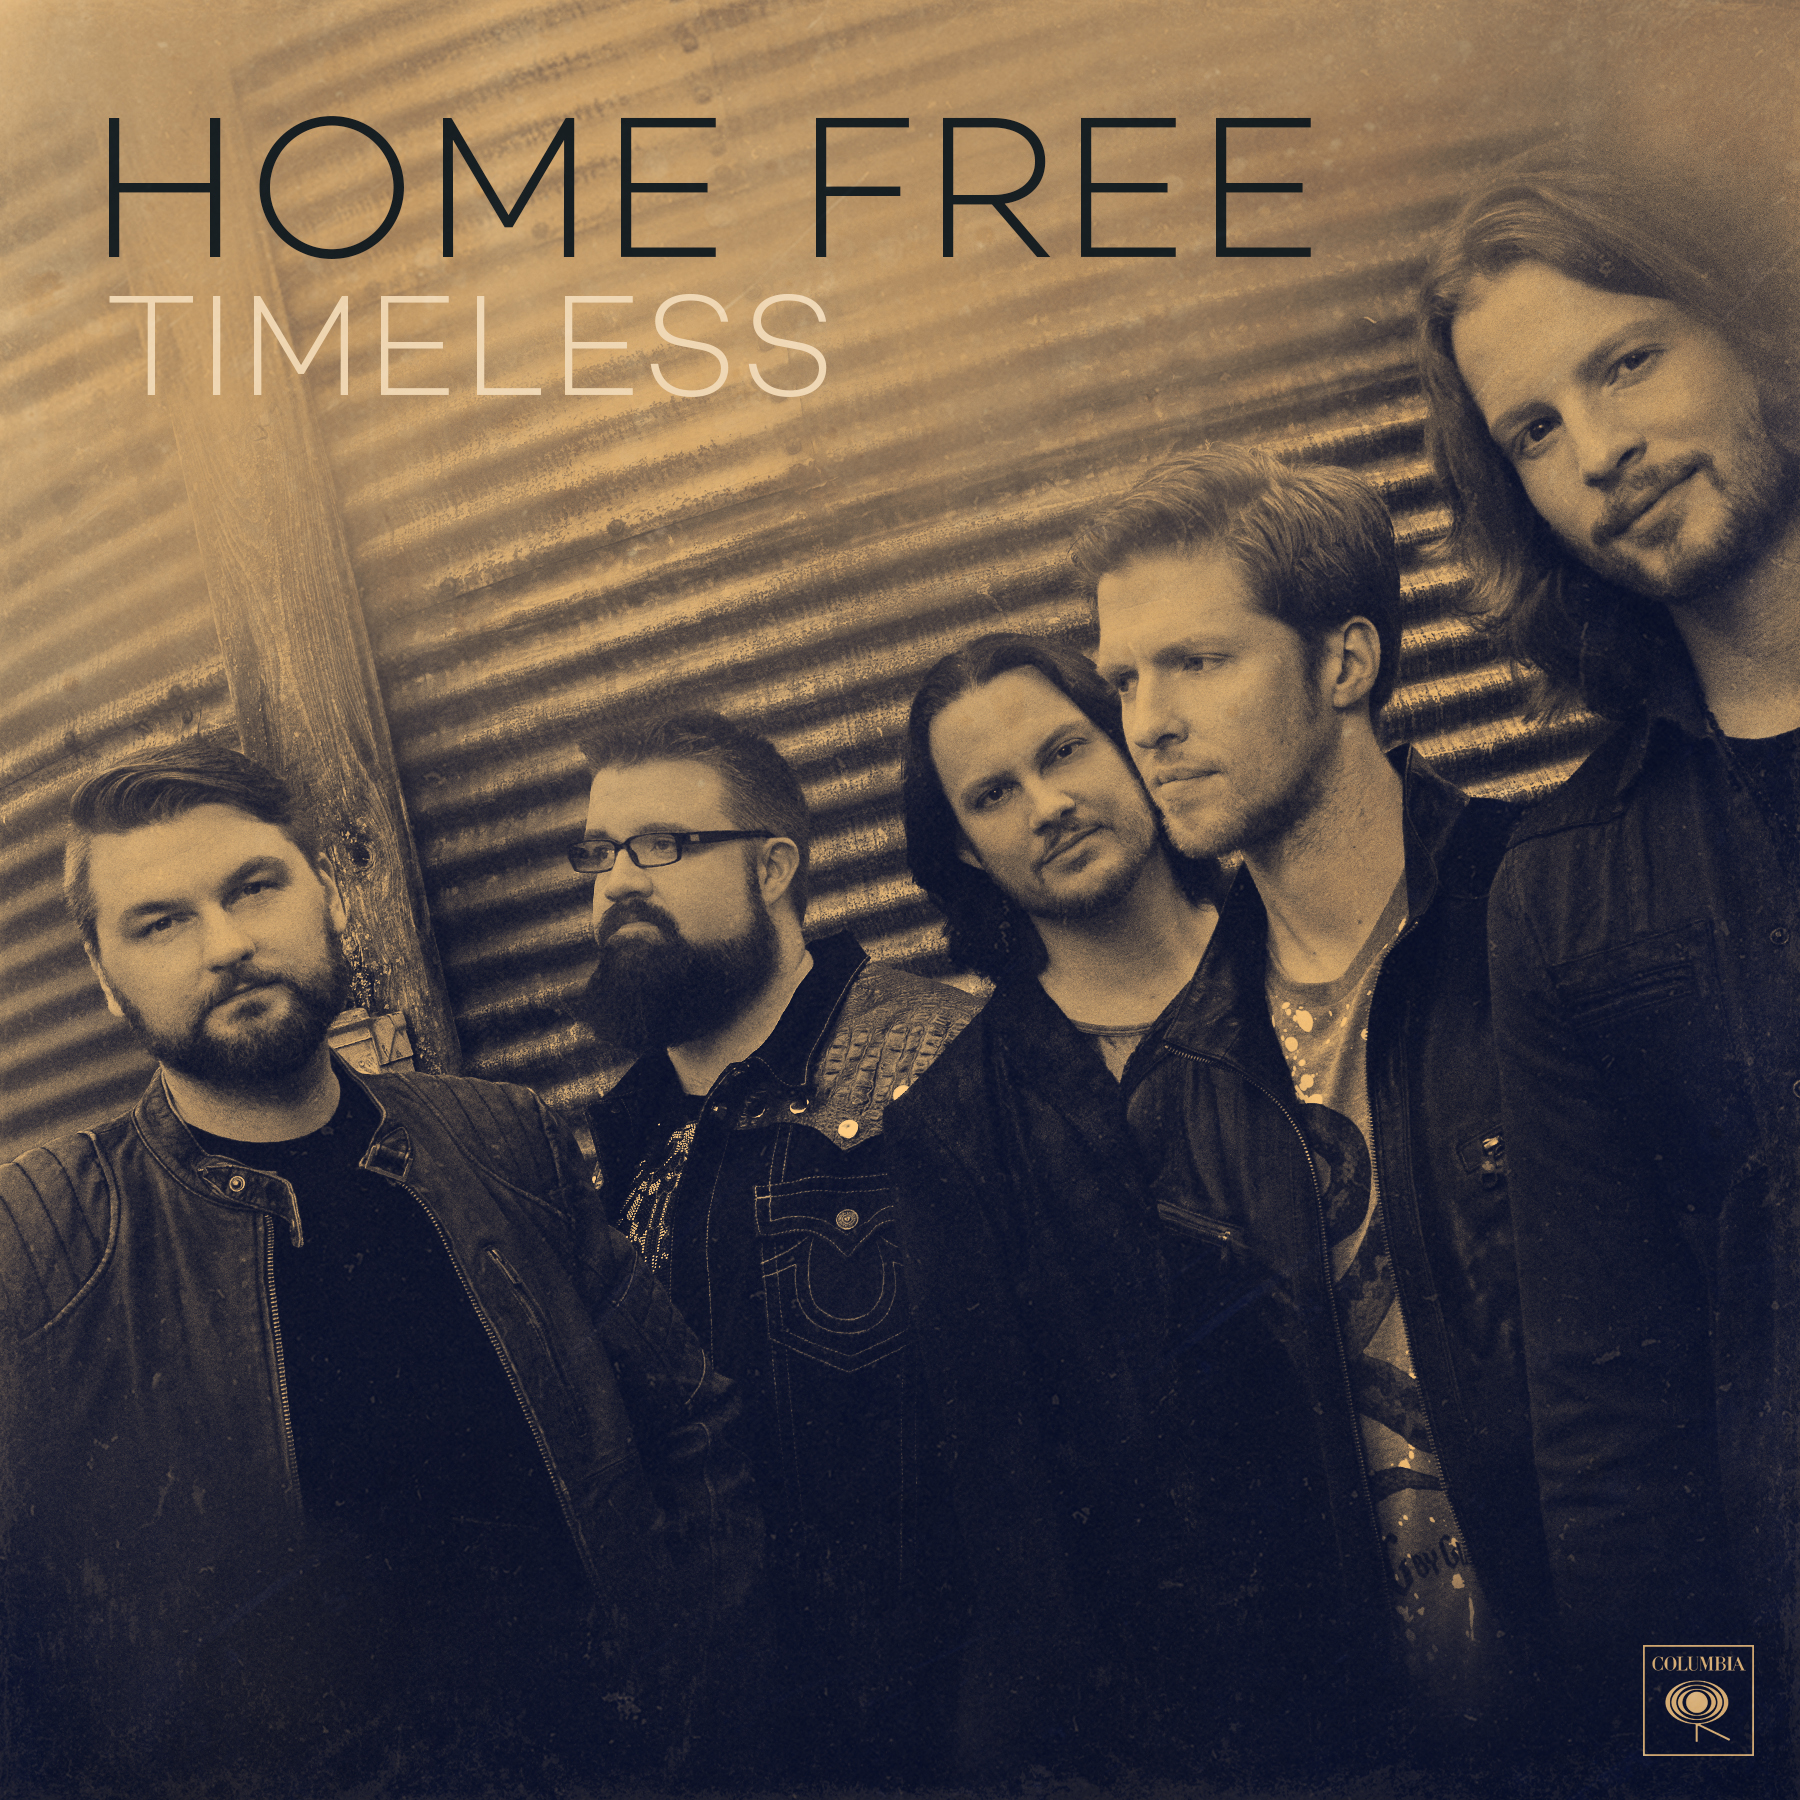 home free finds a new identity on timeless - Home Free Christmas Album